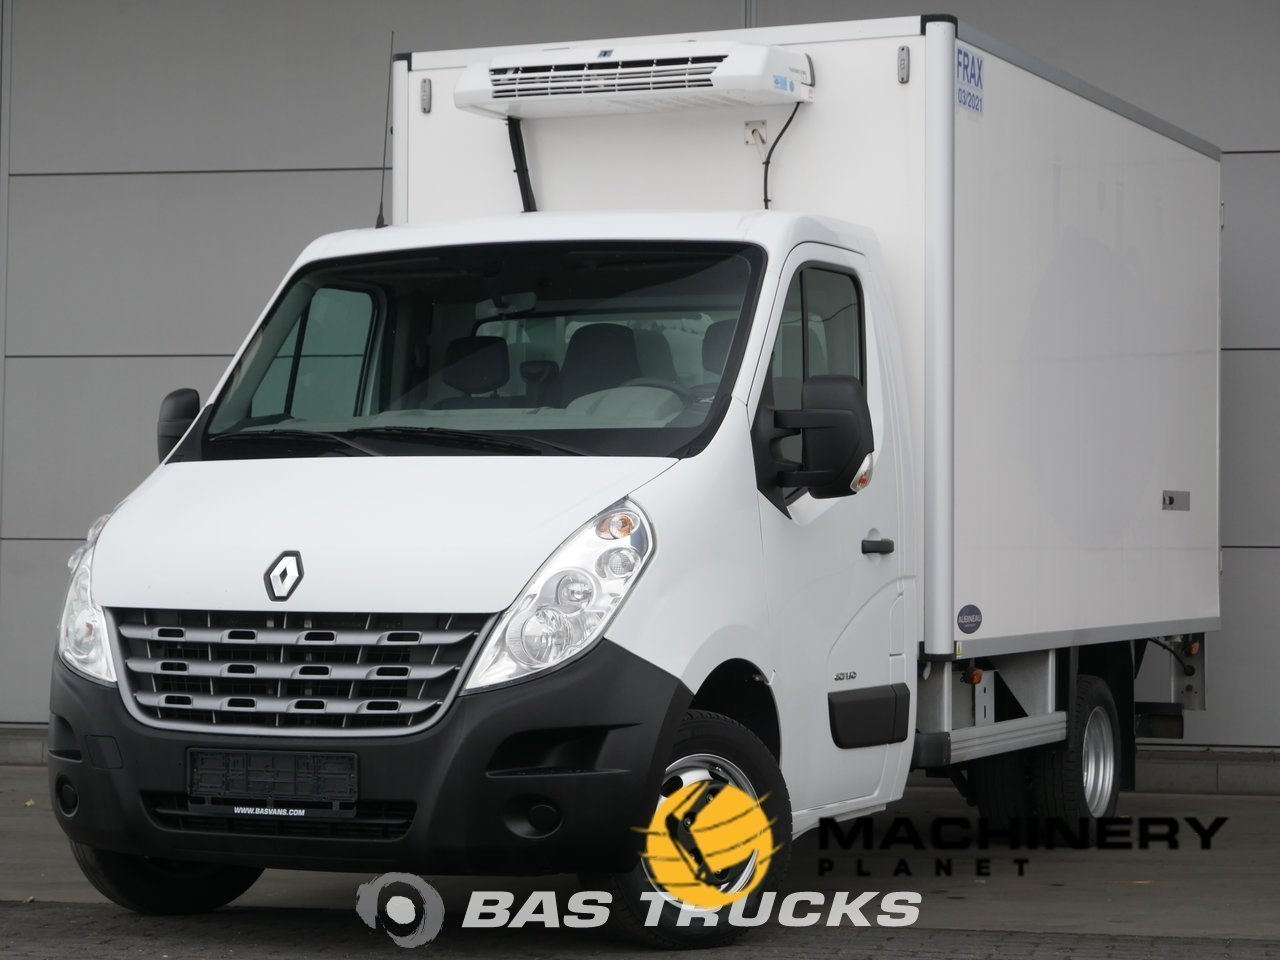 Used-Light-commercial-vehicle-Renault-Master-2012_139121_1-1554199149049_5ca3326d0bda8-1.jpg